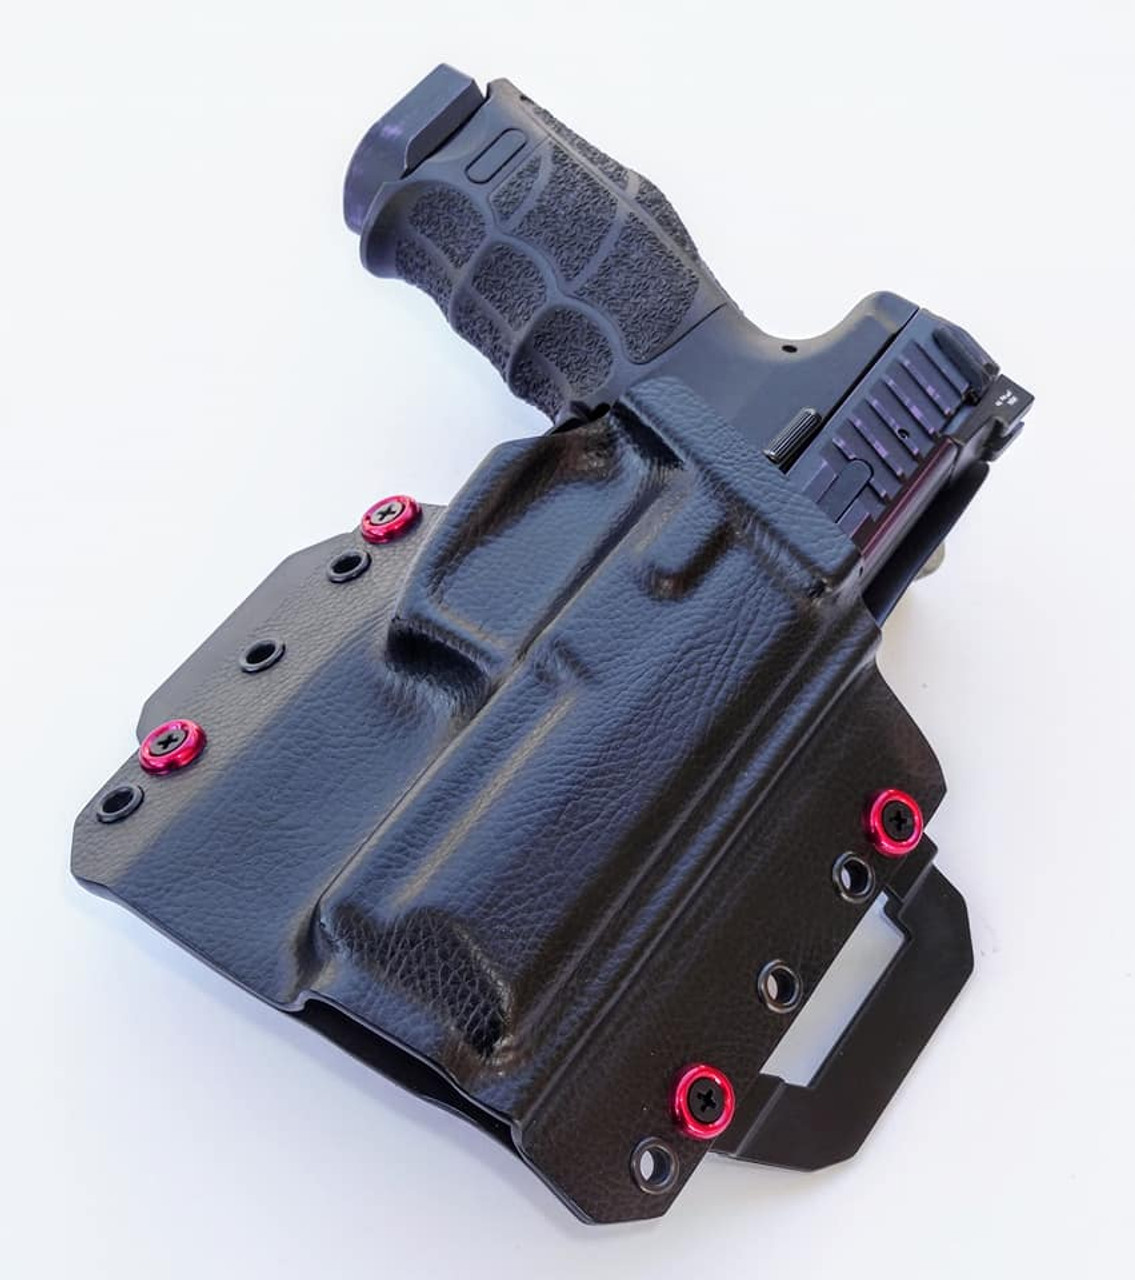 HK VP9 Outside Waistband Kydex Holster